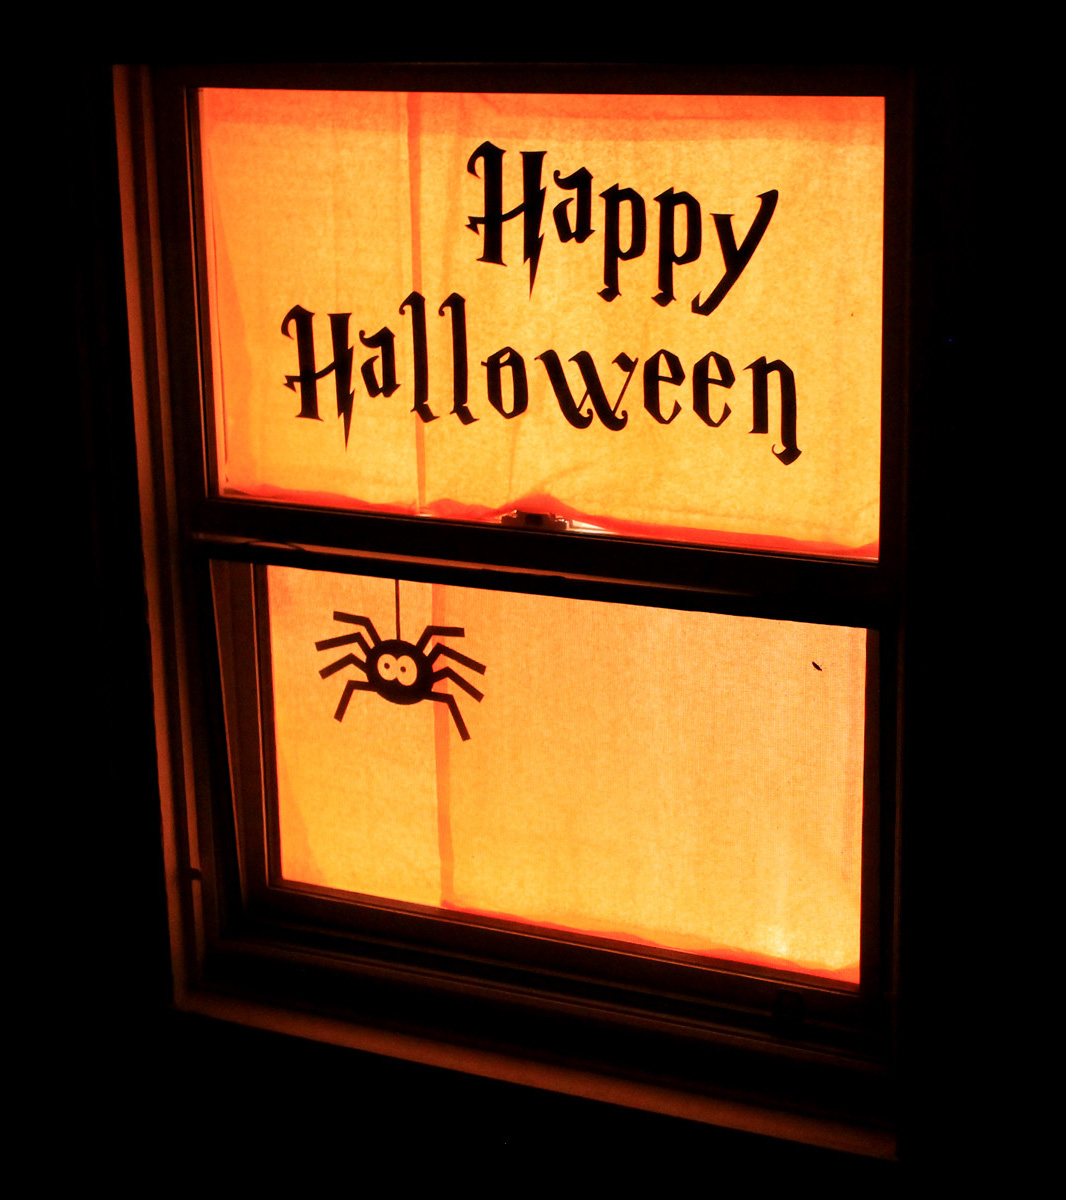 The 33 Best Halloween Window Decorations for 2017